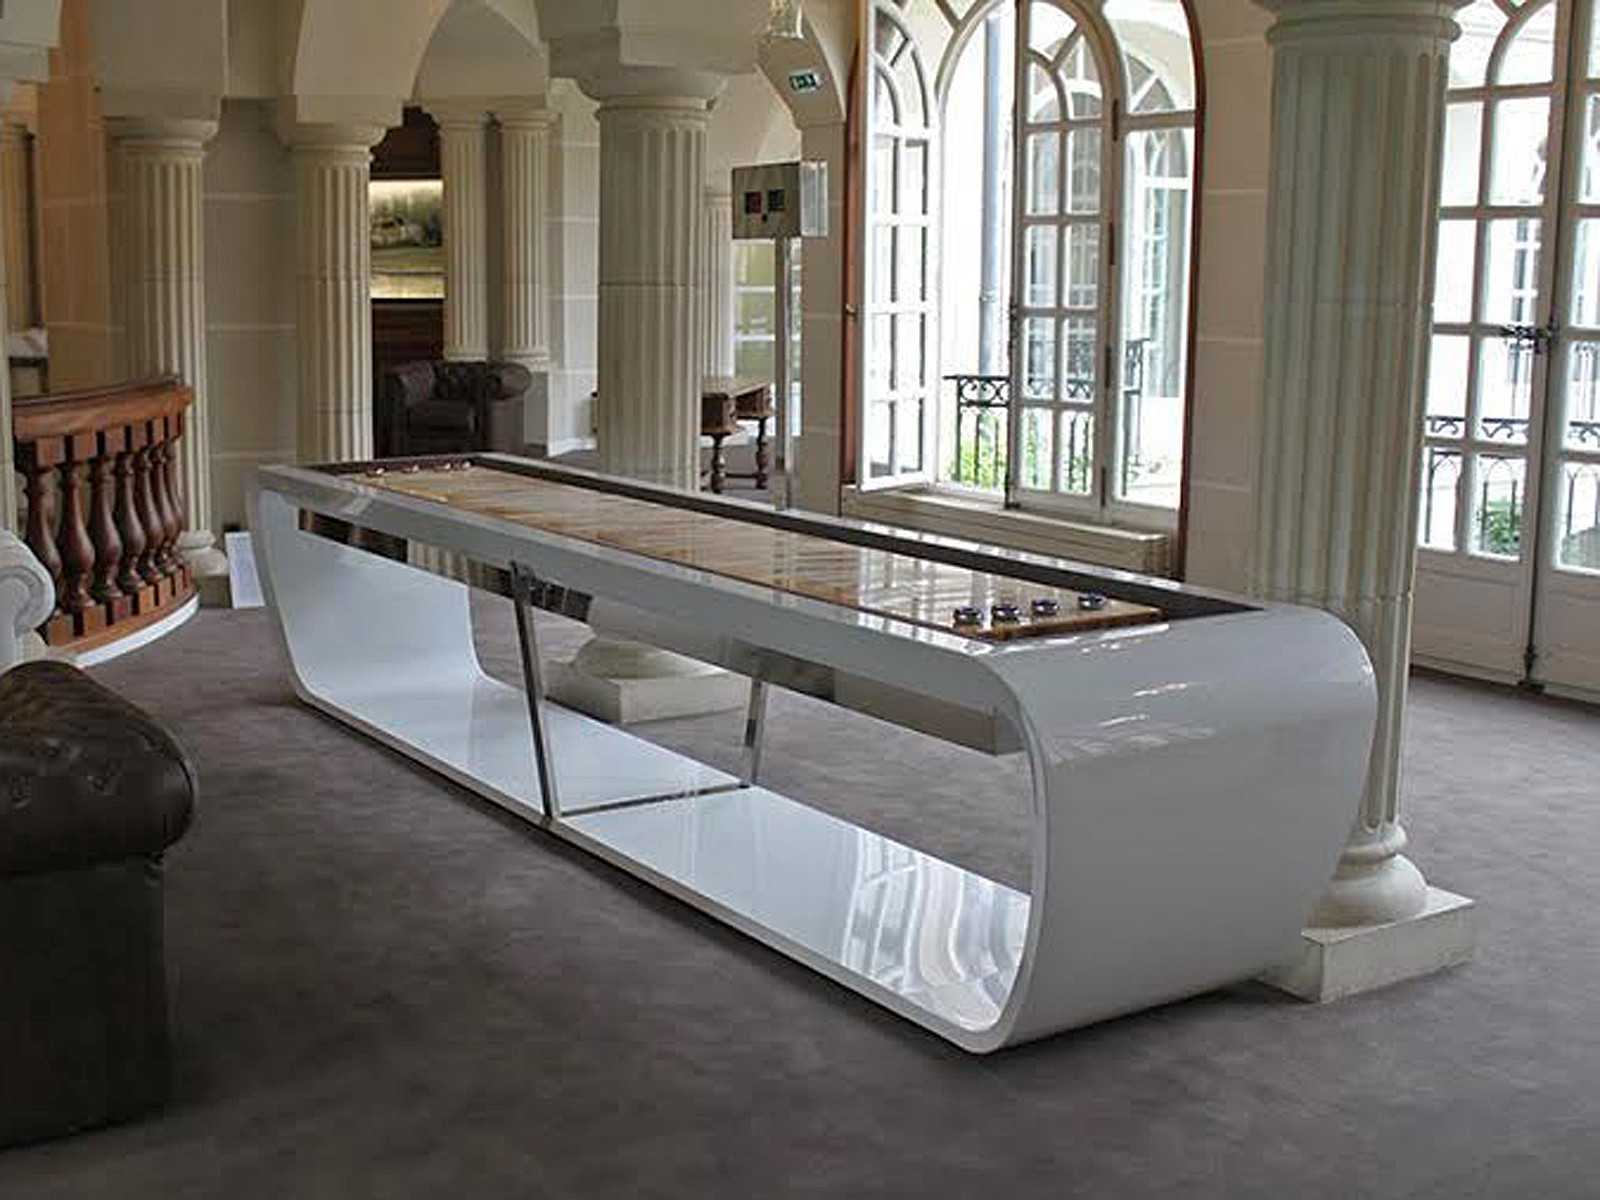 Table Shuffle Board | Shuffleboard Table for Sale | Shuffleboard Table